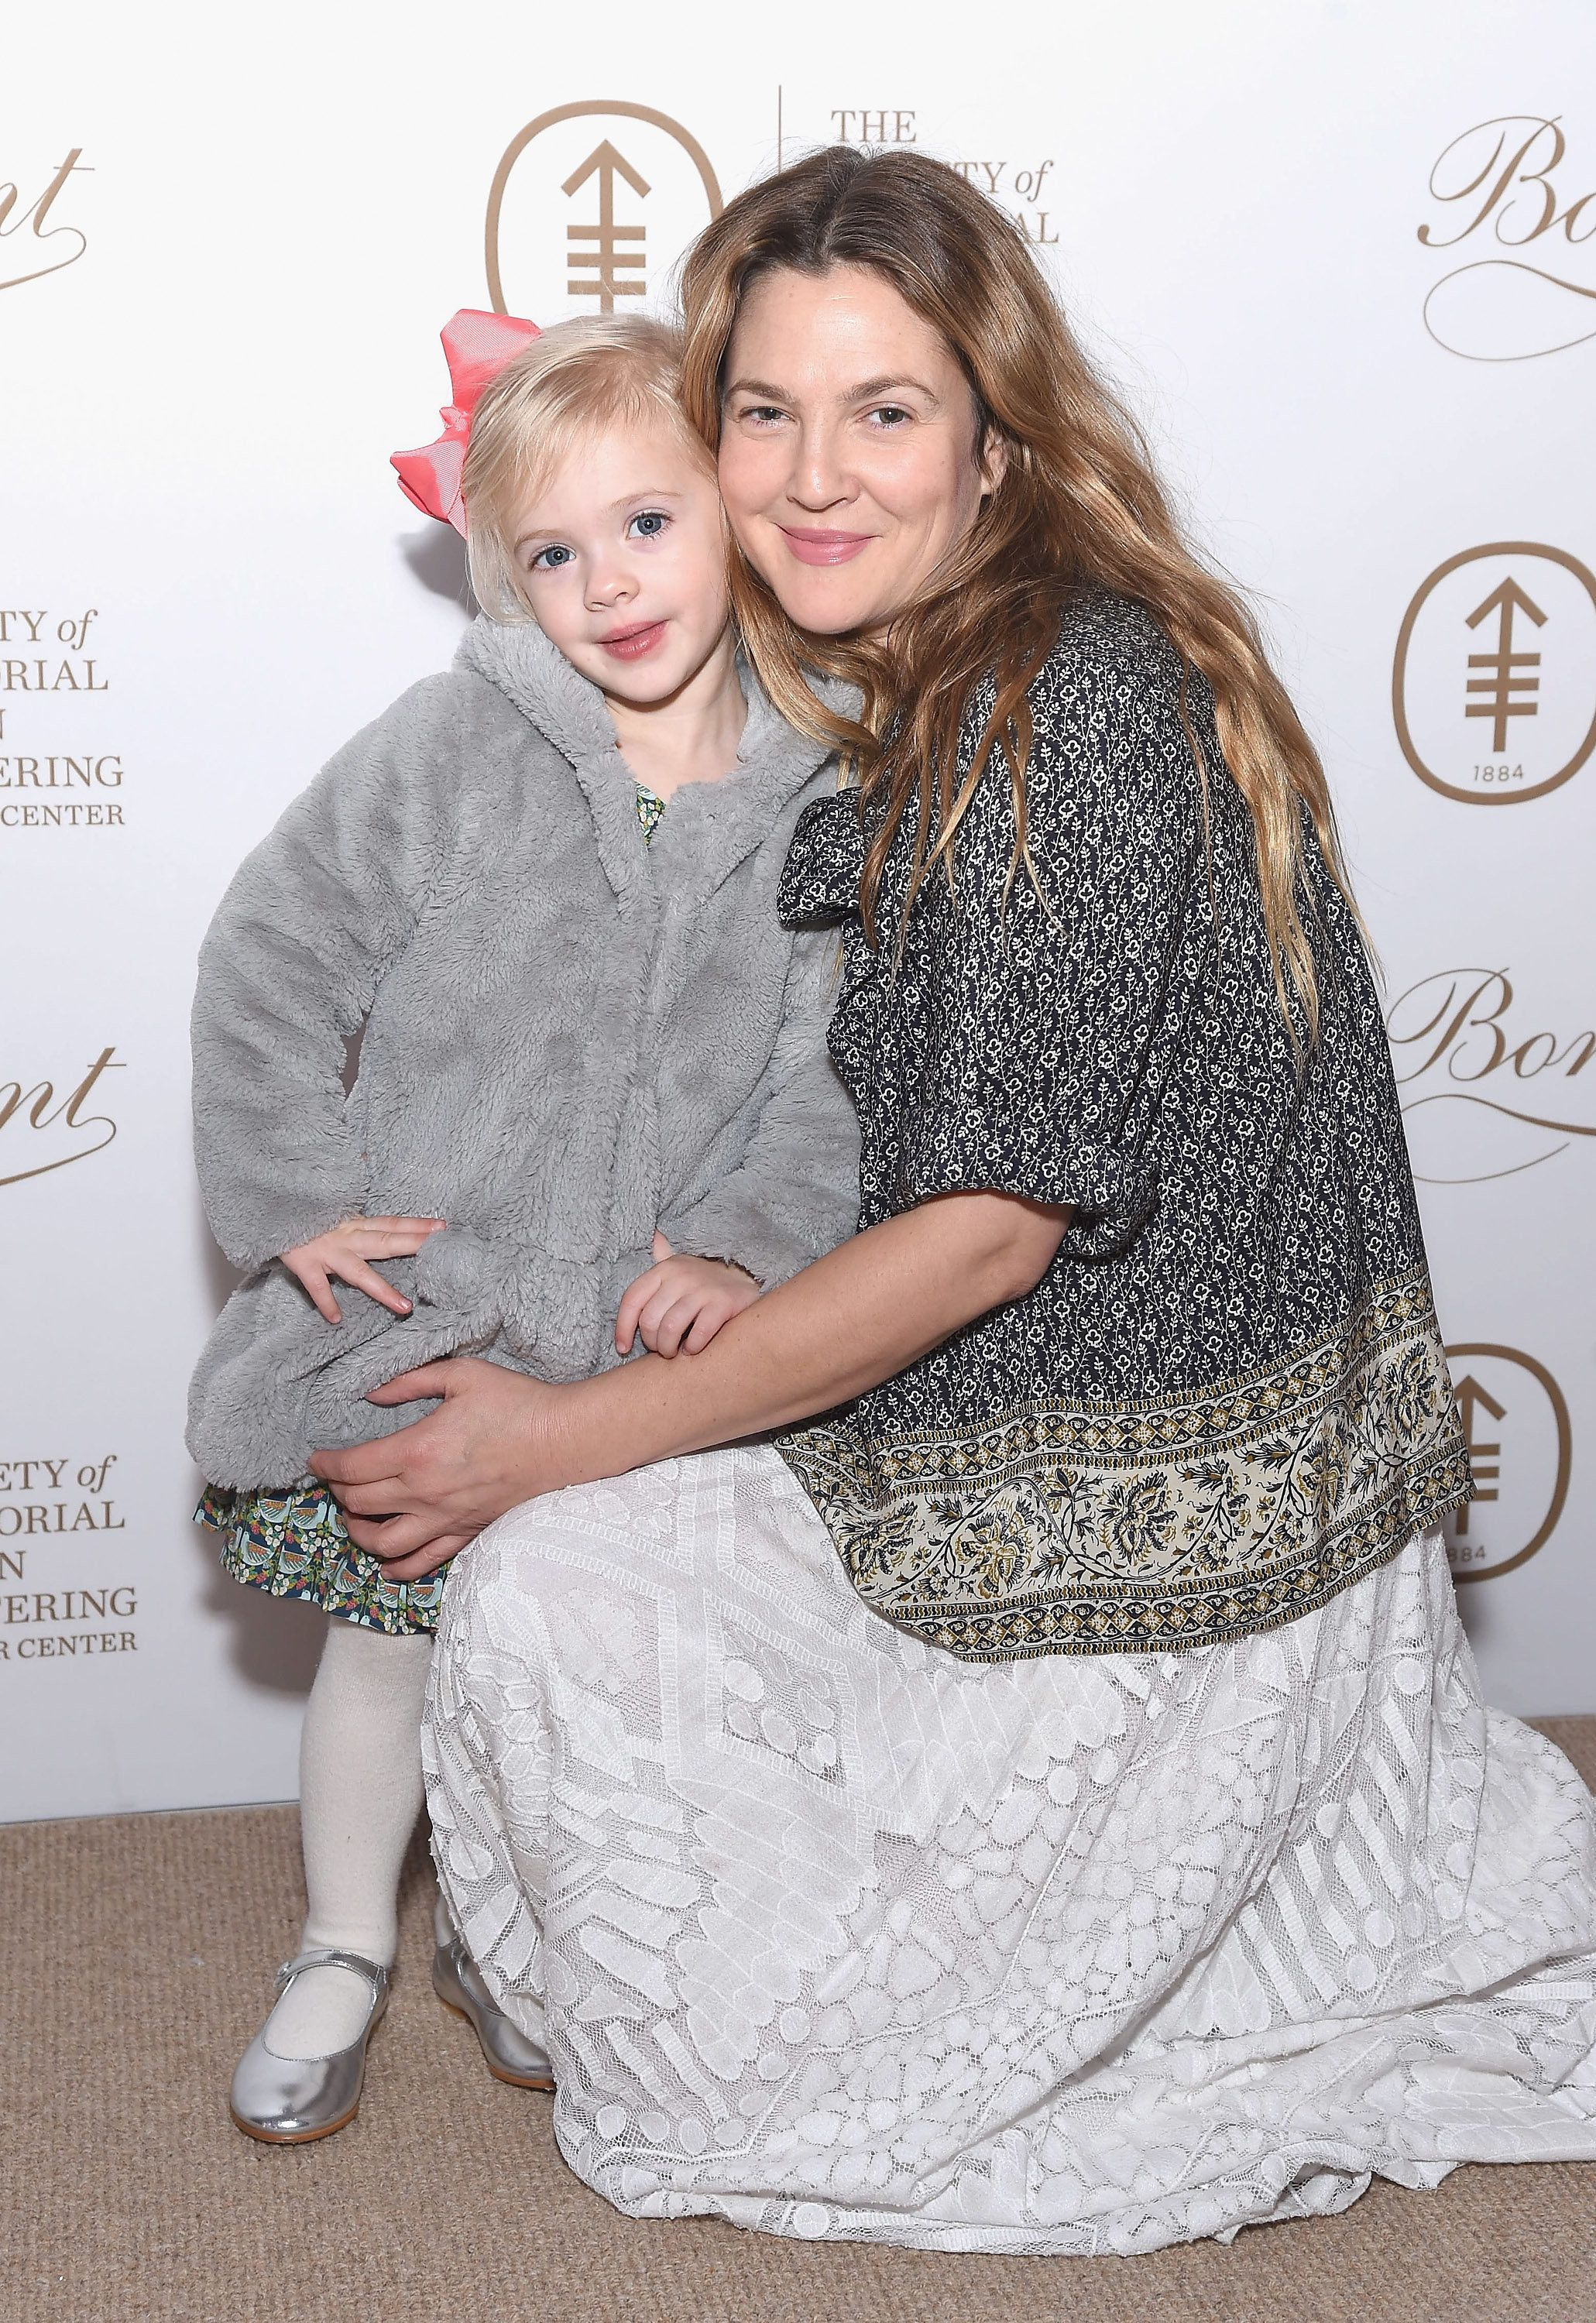 NEW YORK, NY - MARCH 07:  Drew Barrymore and daughter Frankie Barrymore Kopelman attend the 2017 Society Of MSK Bunny Hop at 583 Park Avenue on March 7, 2017 in New York City.  (Photo by Gary Gershoff/WireImage)